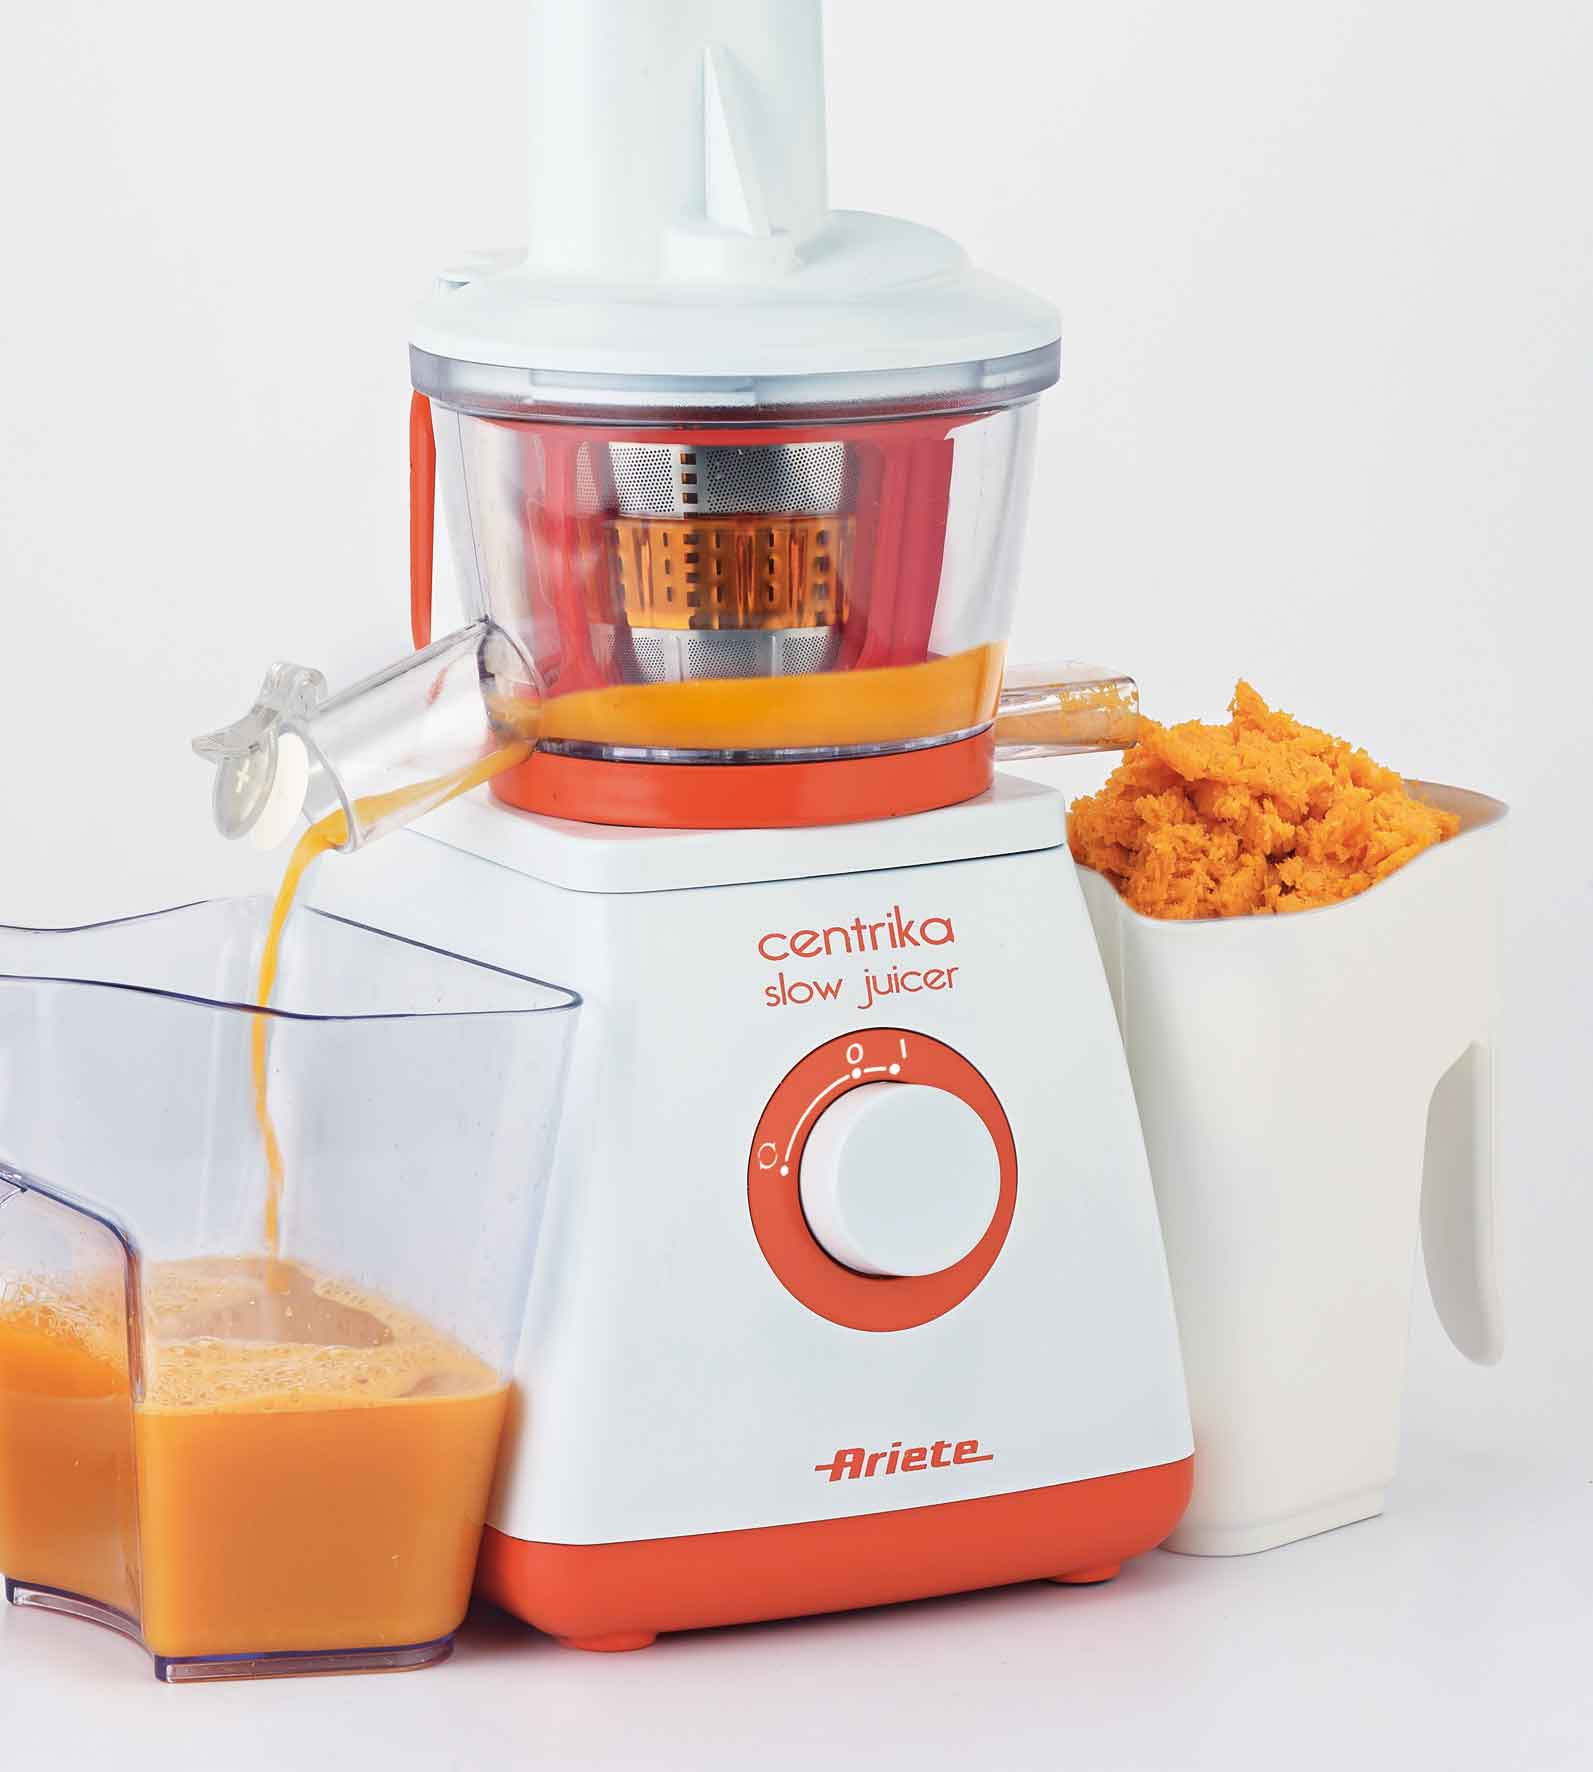 Cucina Slow Juicer Reviews : Centrika Slow Juicer - Ariete Piccoli elettrodomestici